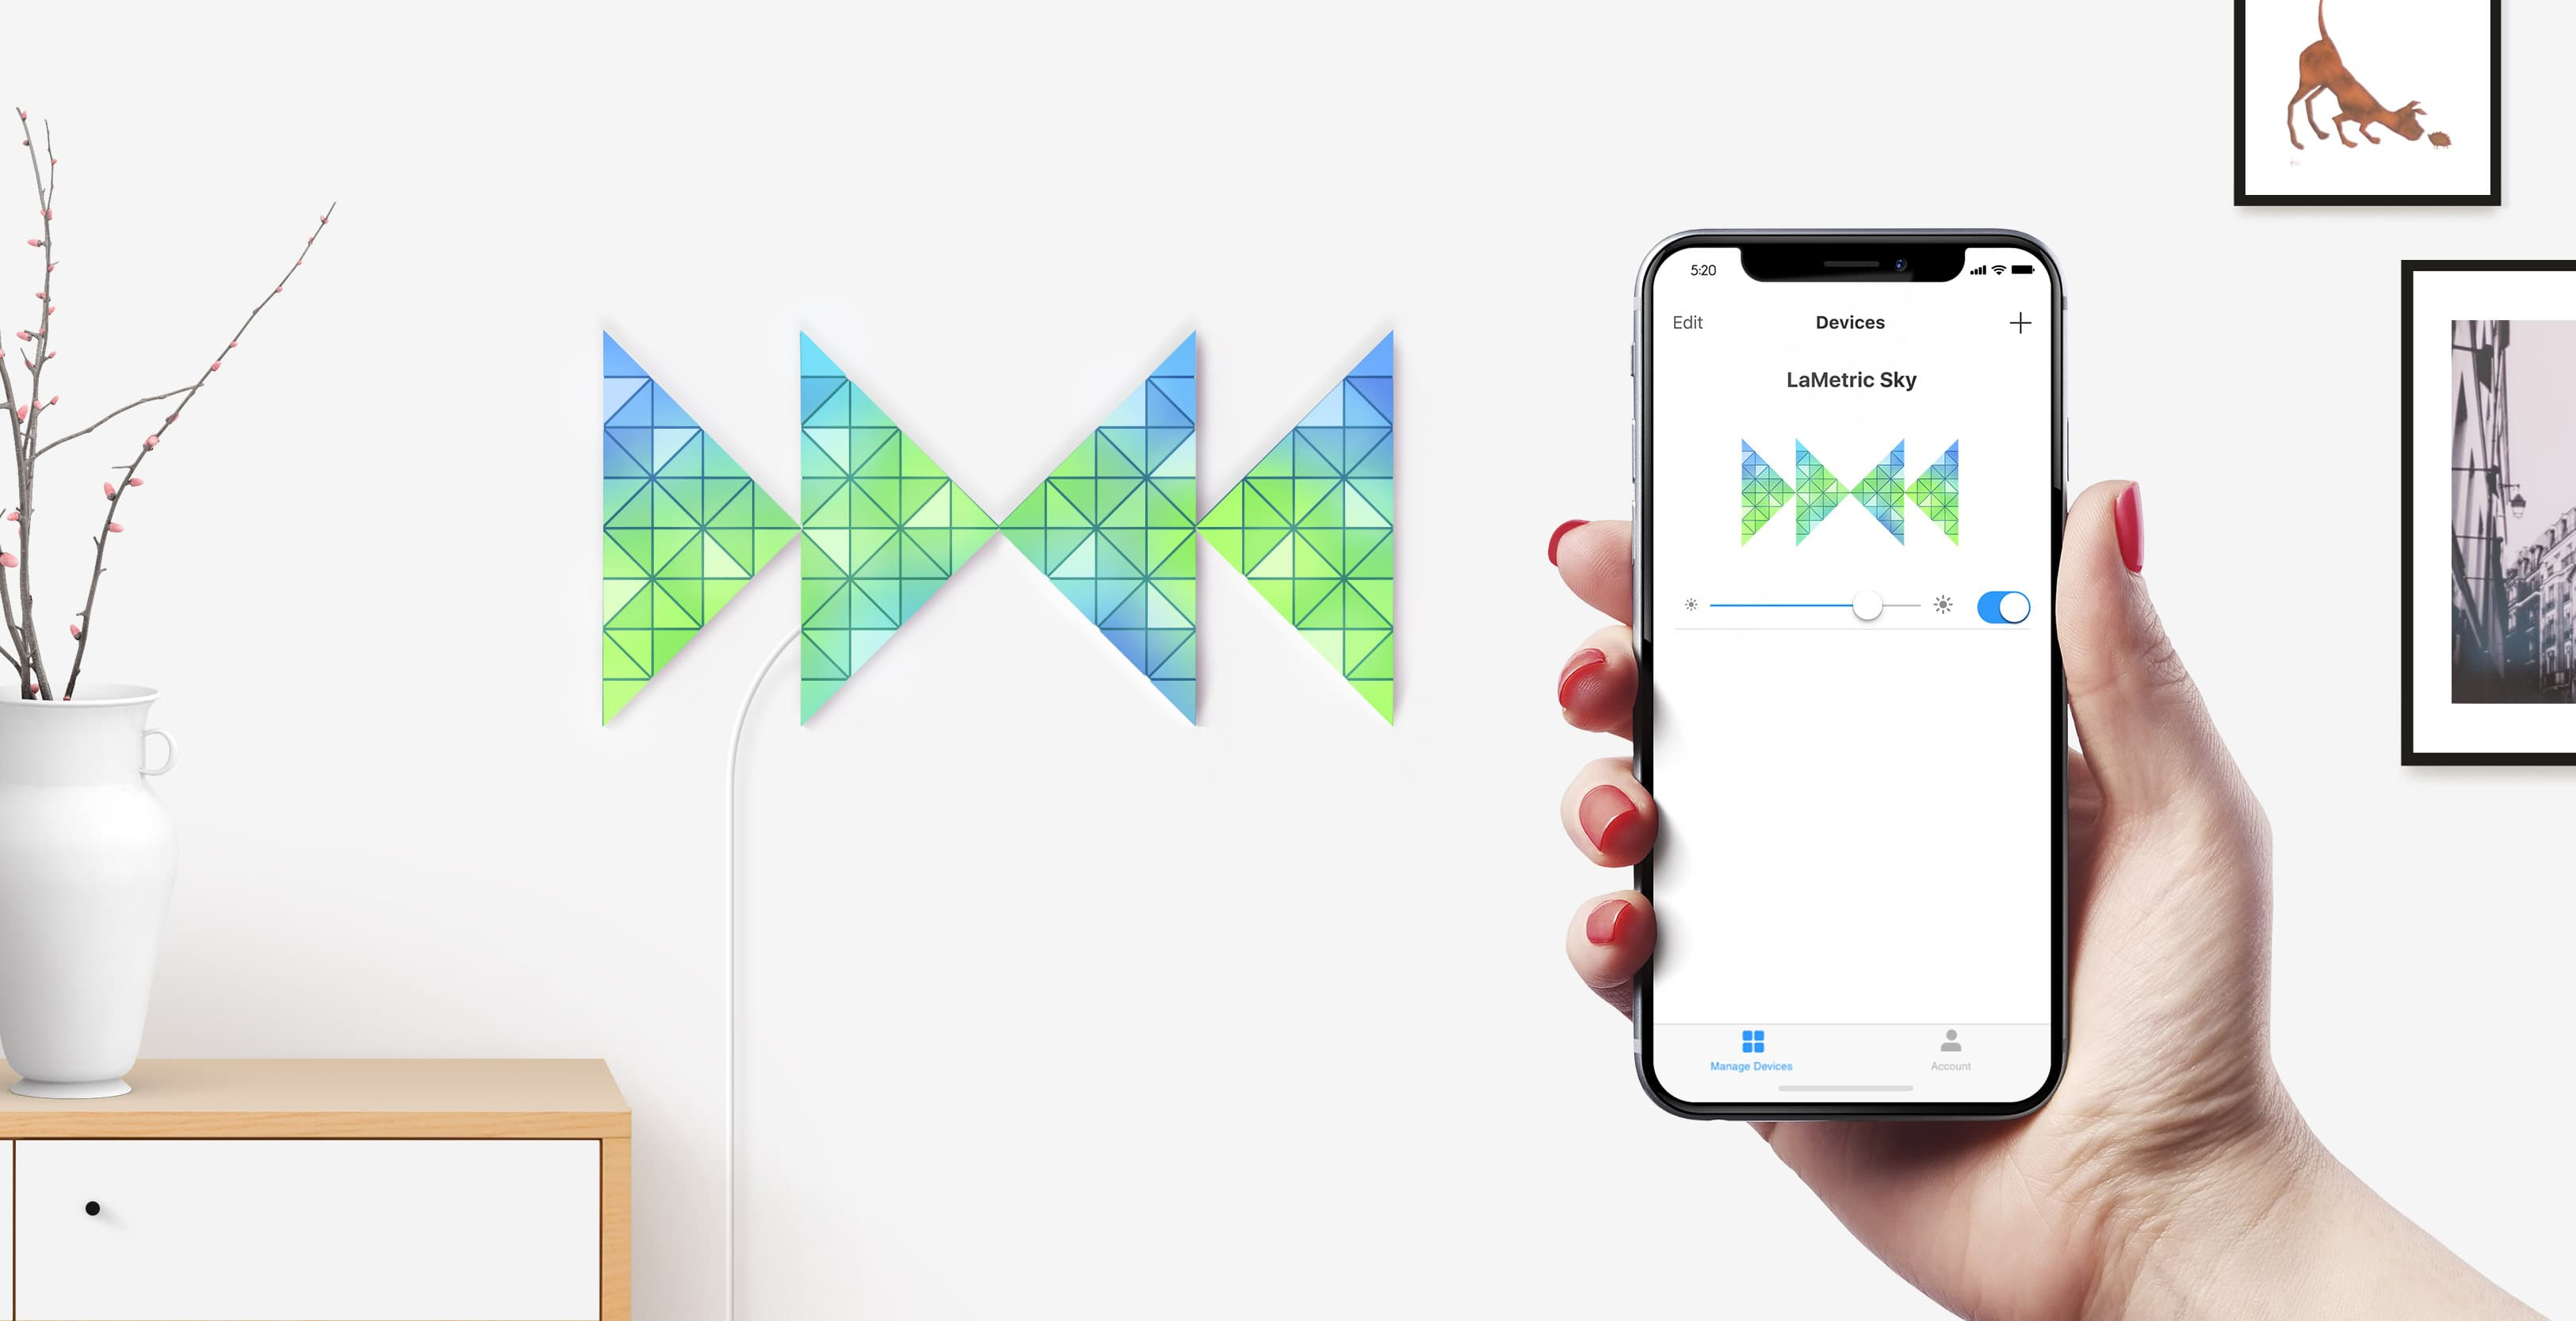 Bowtie shape, assembled from 4 smart light surfaces, complements room interior and iPhone shows ability to change brightness